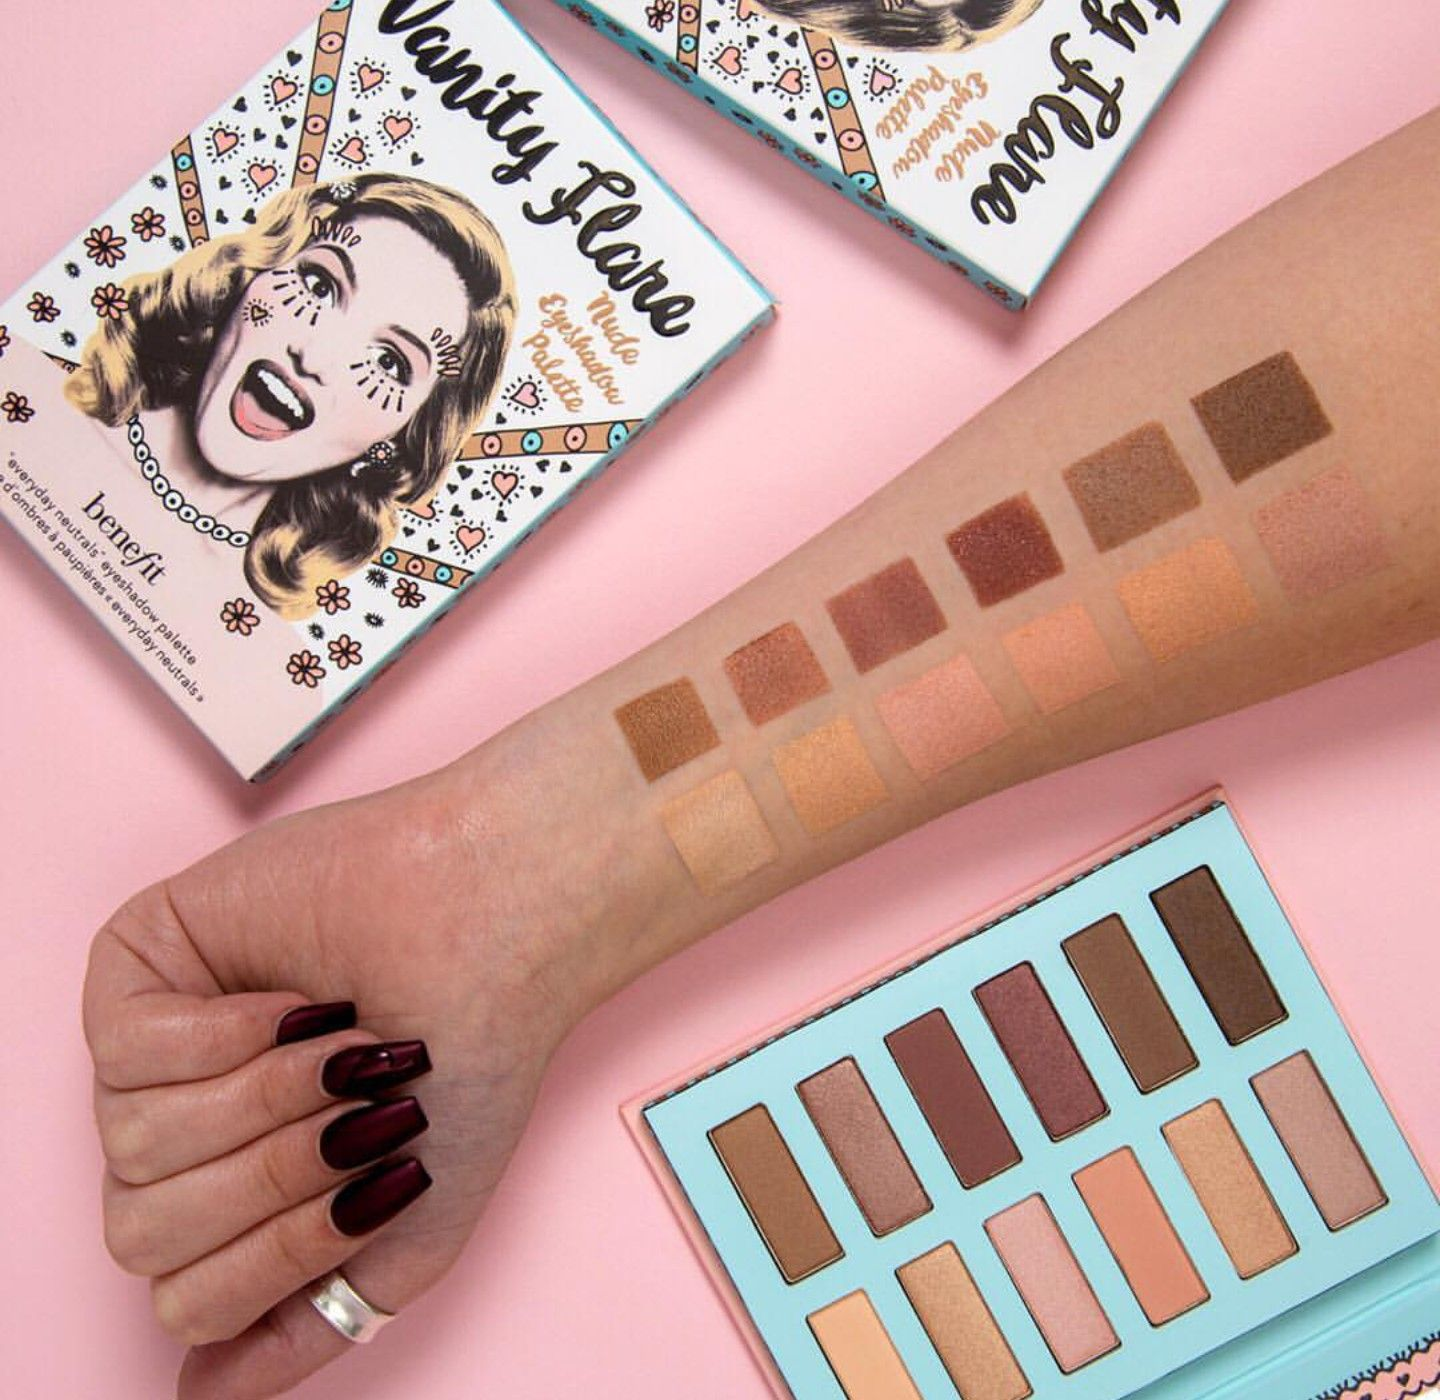 Pin by Dina on makeup Benefit eyeshadow palette, Benefit